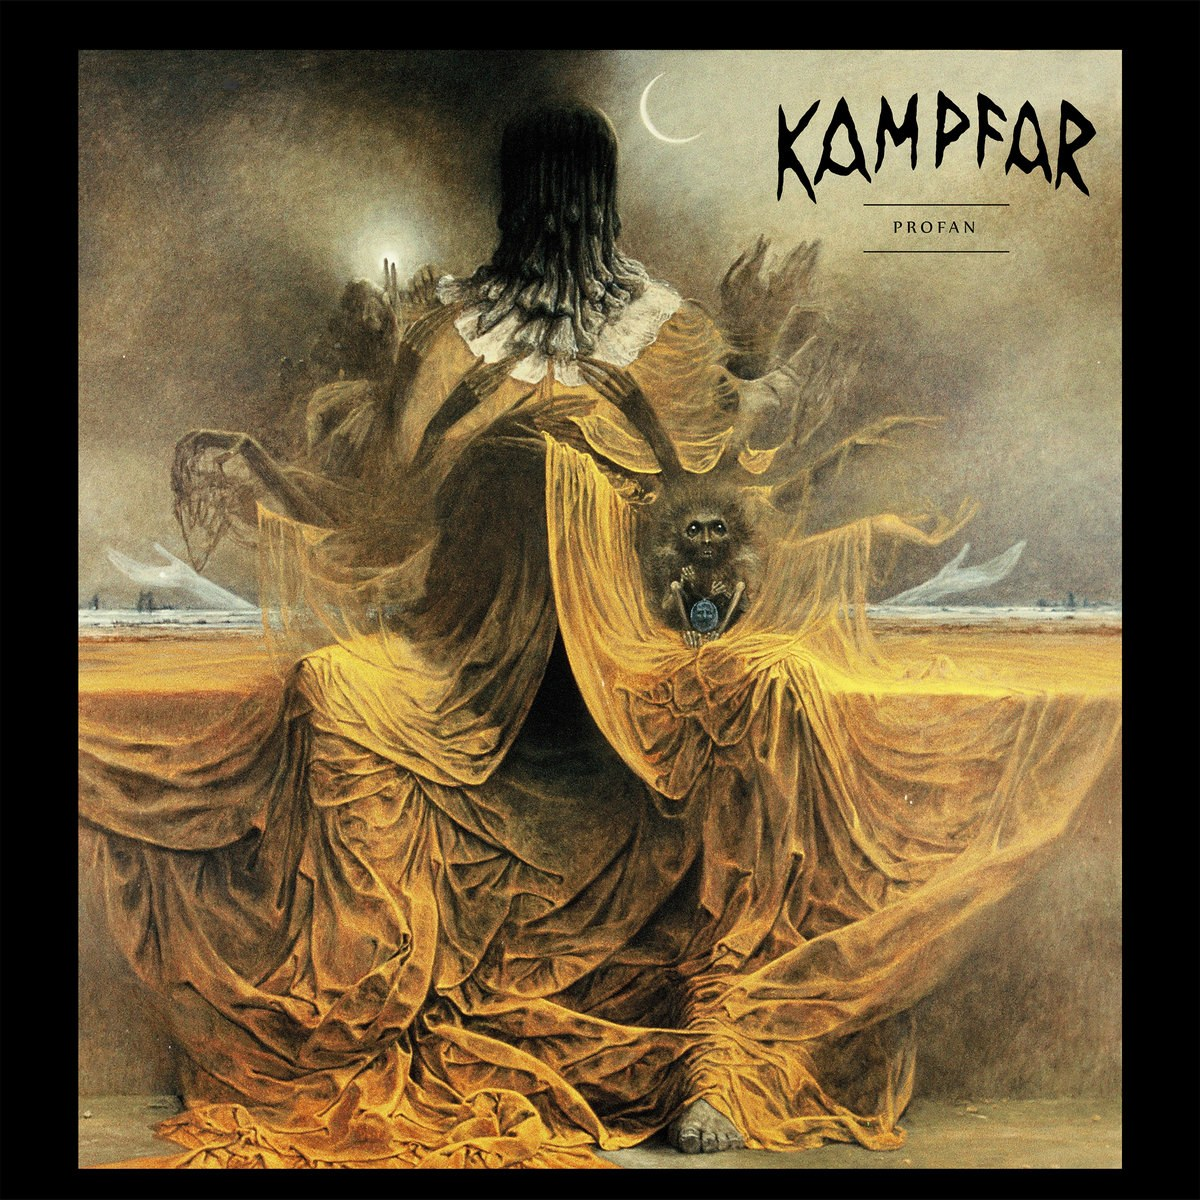 Review for Kampfar - Profan